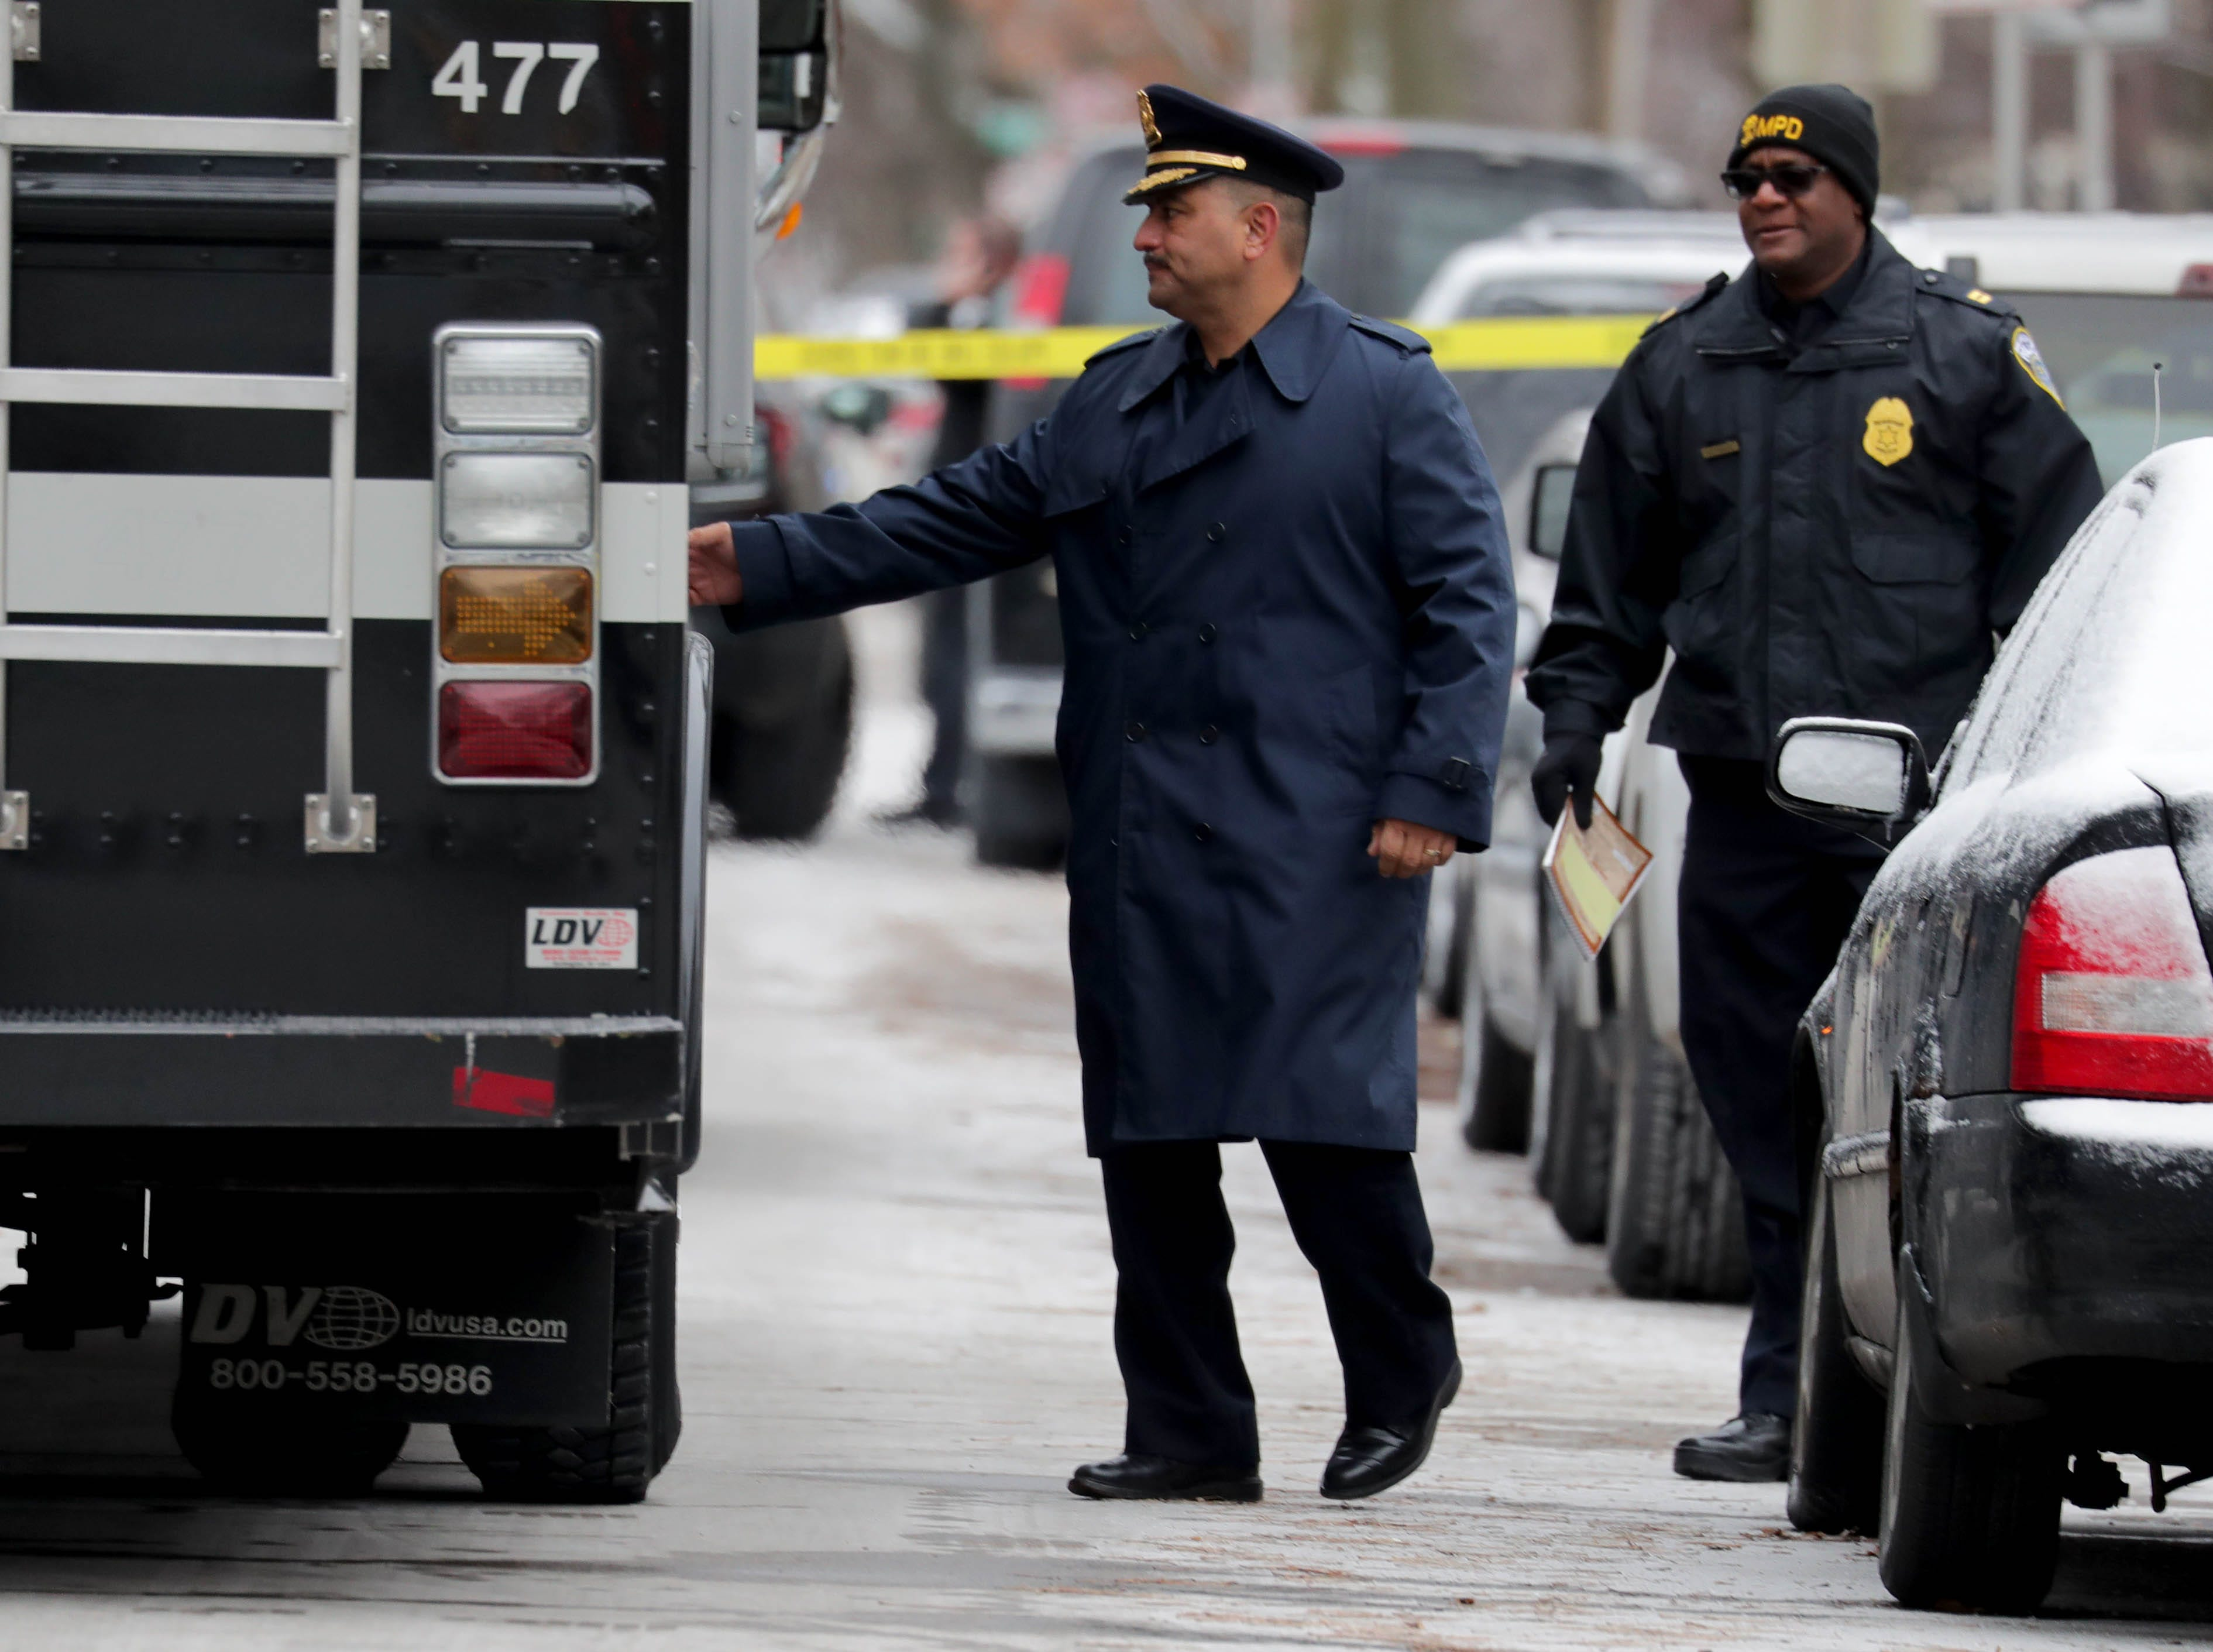 Milwaukee Police Chief Alfonso Morales enters an incident command post while on the scene.